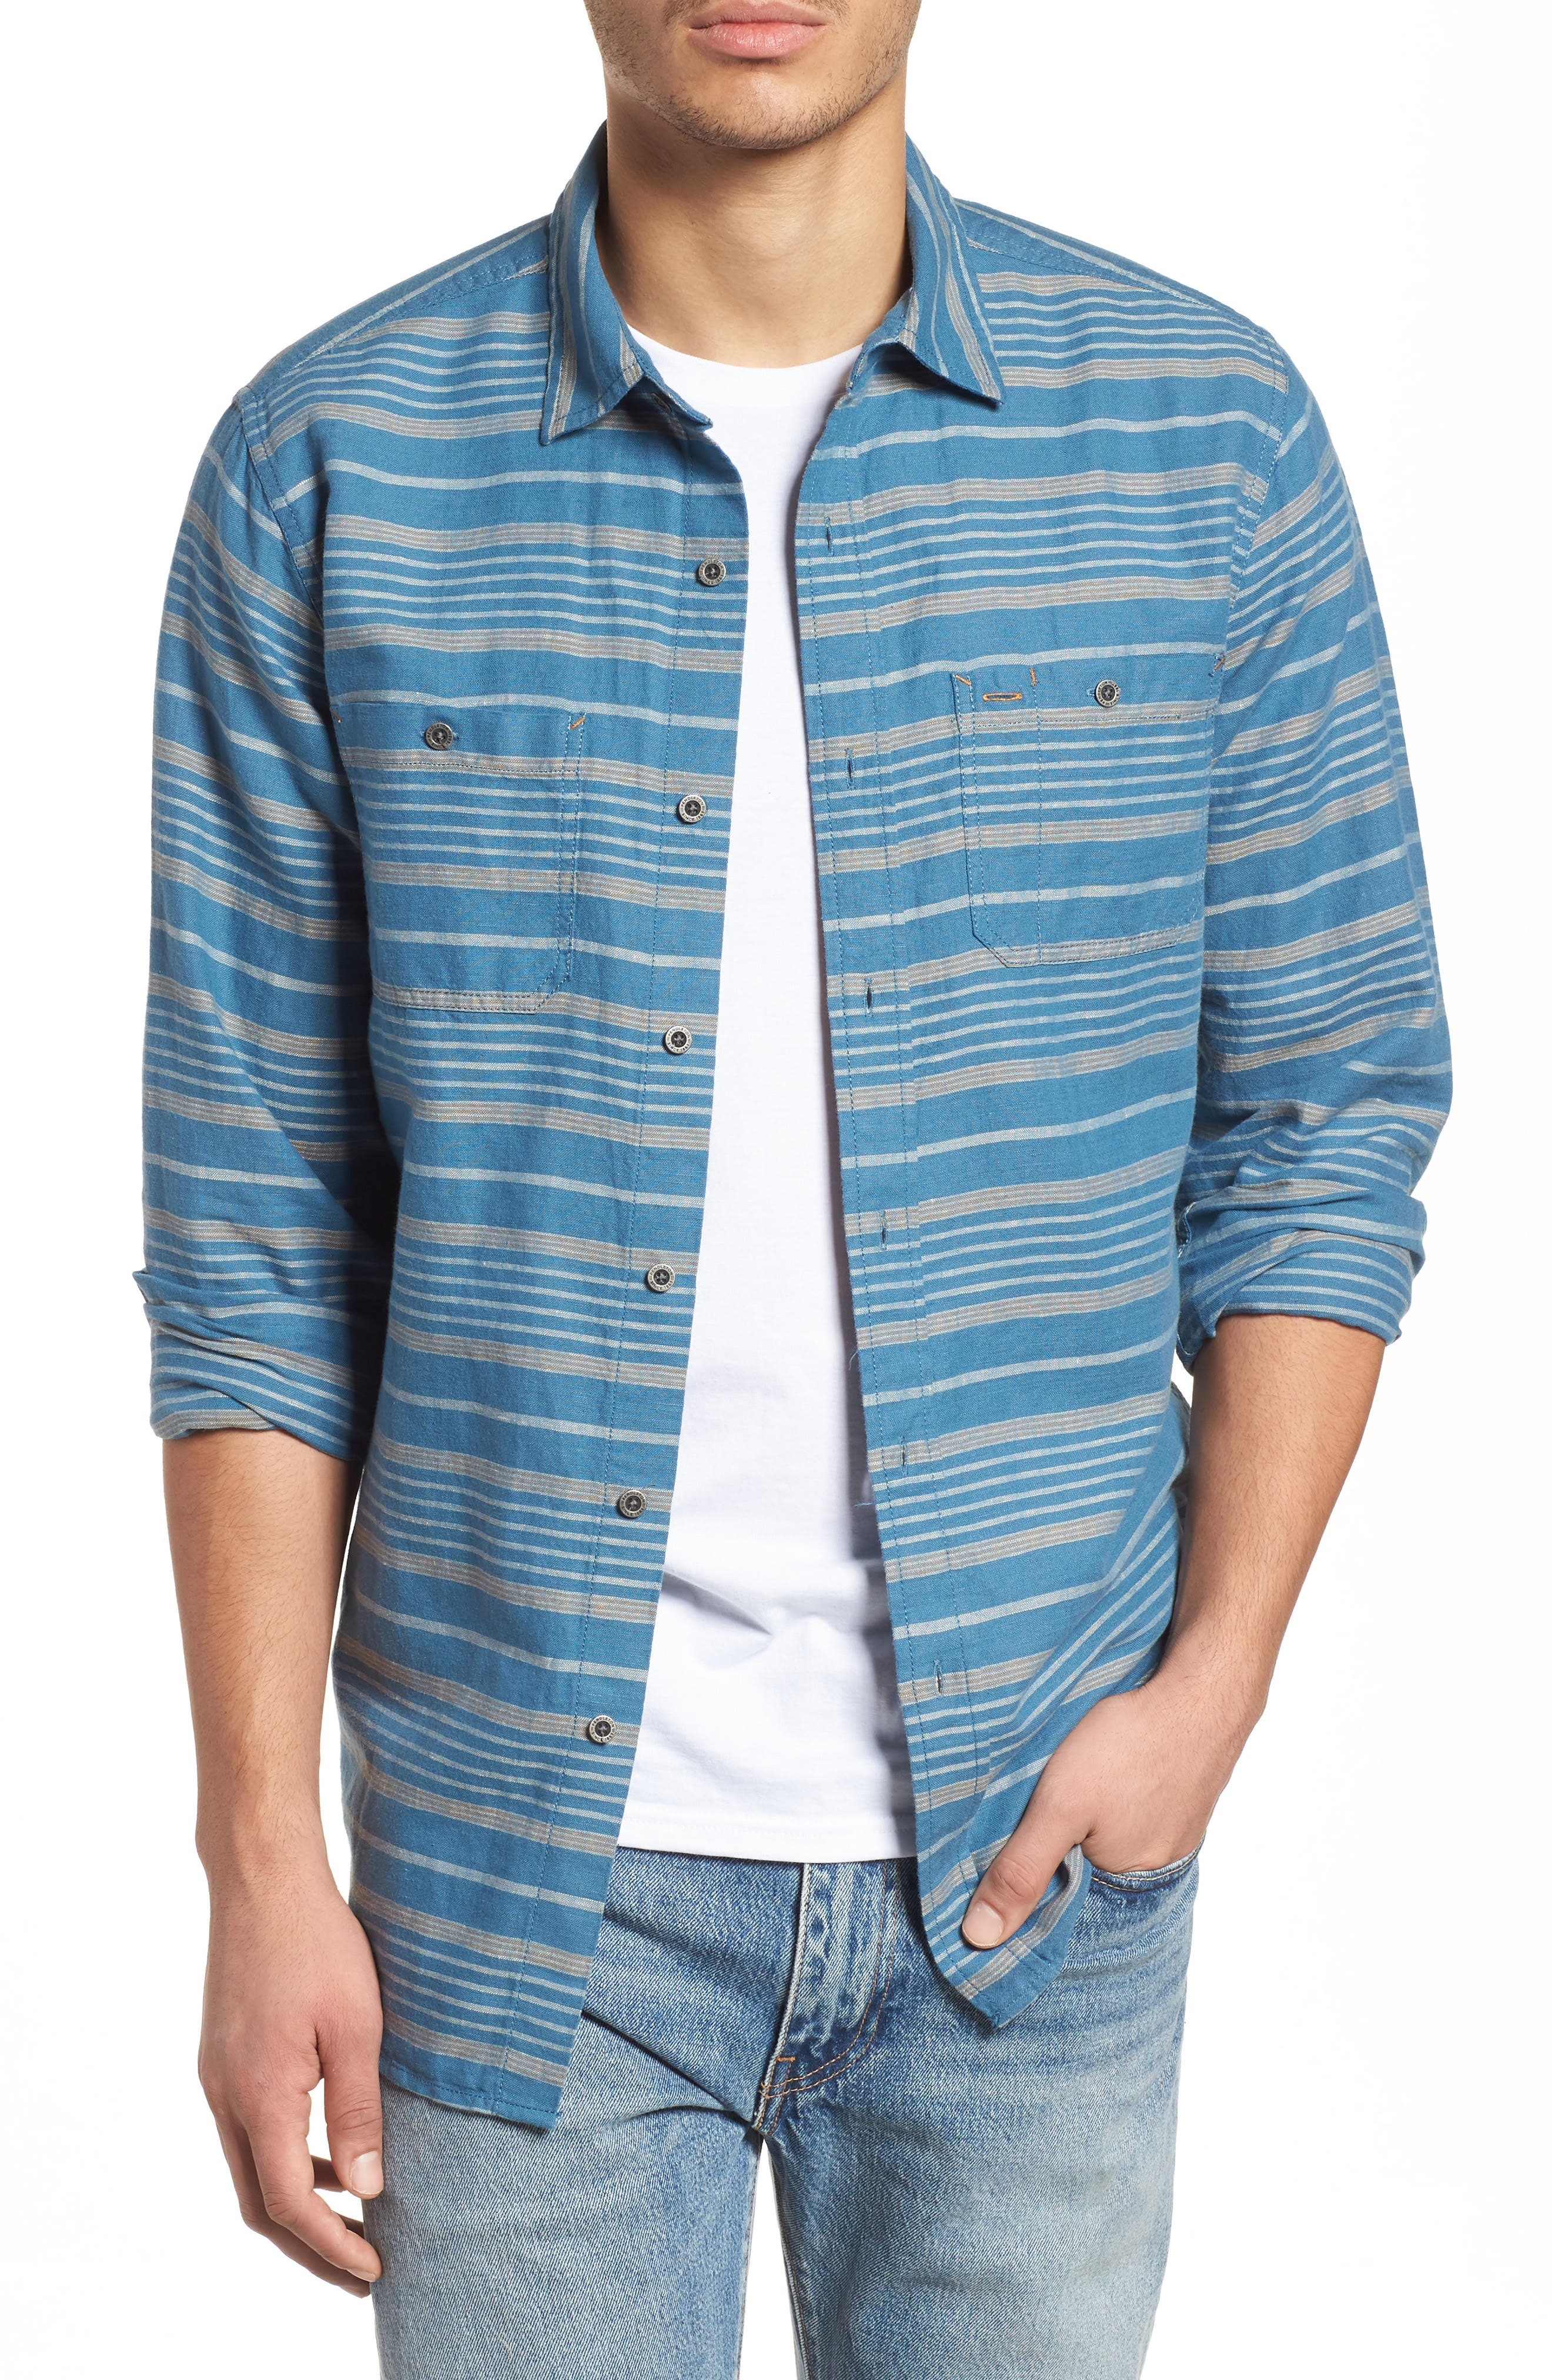 Kay Street Fitted Shirt,                             Main thumbnail 1, color,                             Navy/ Cream Stripe